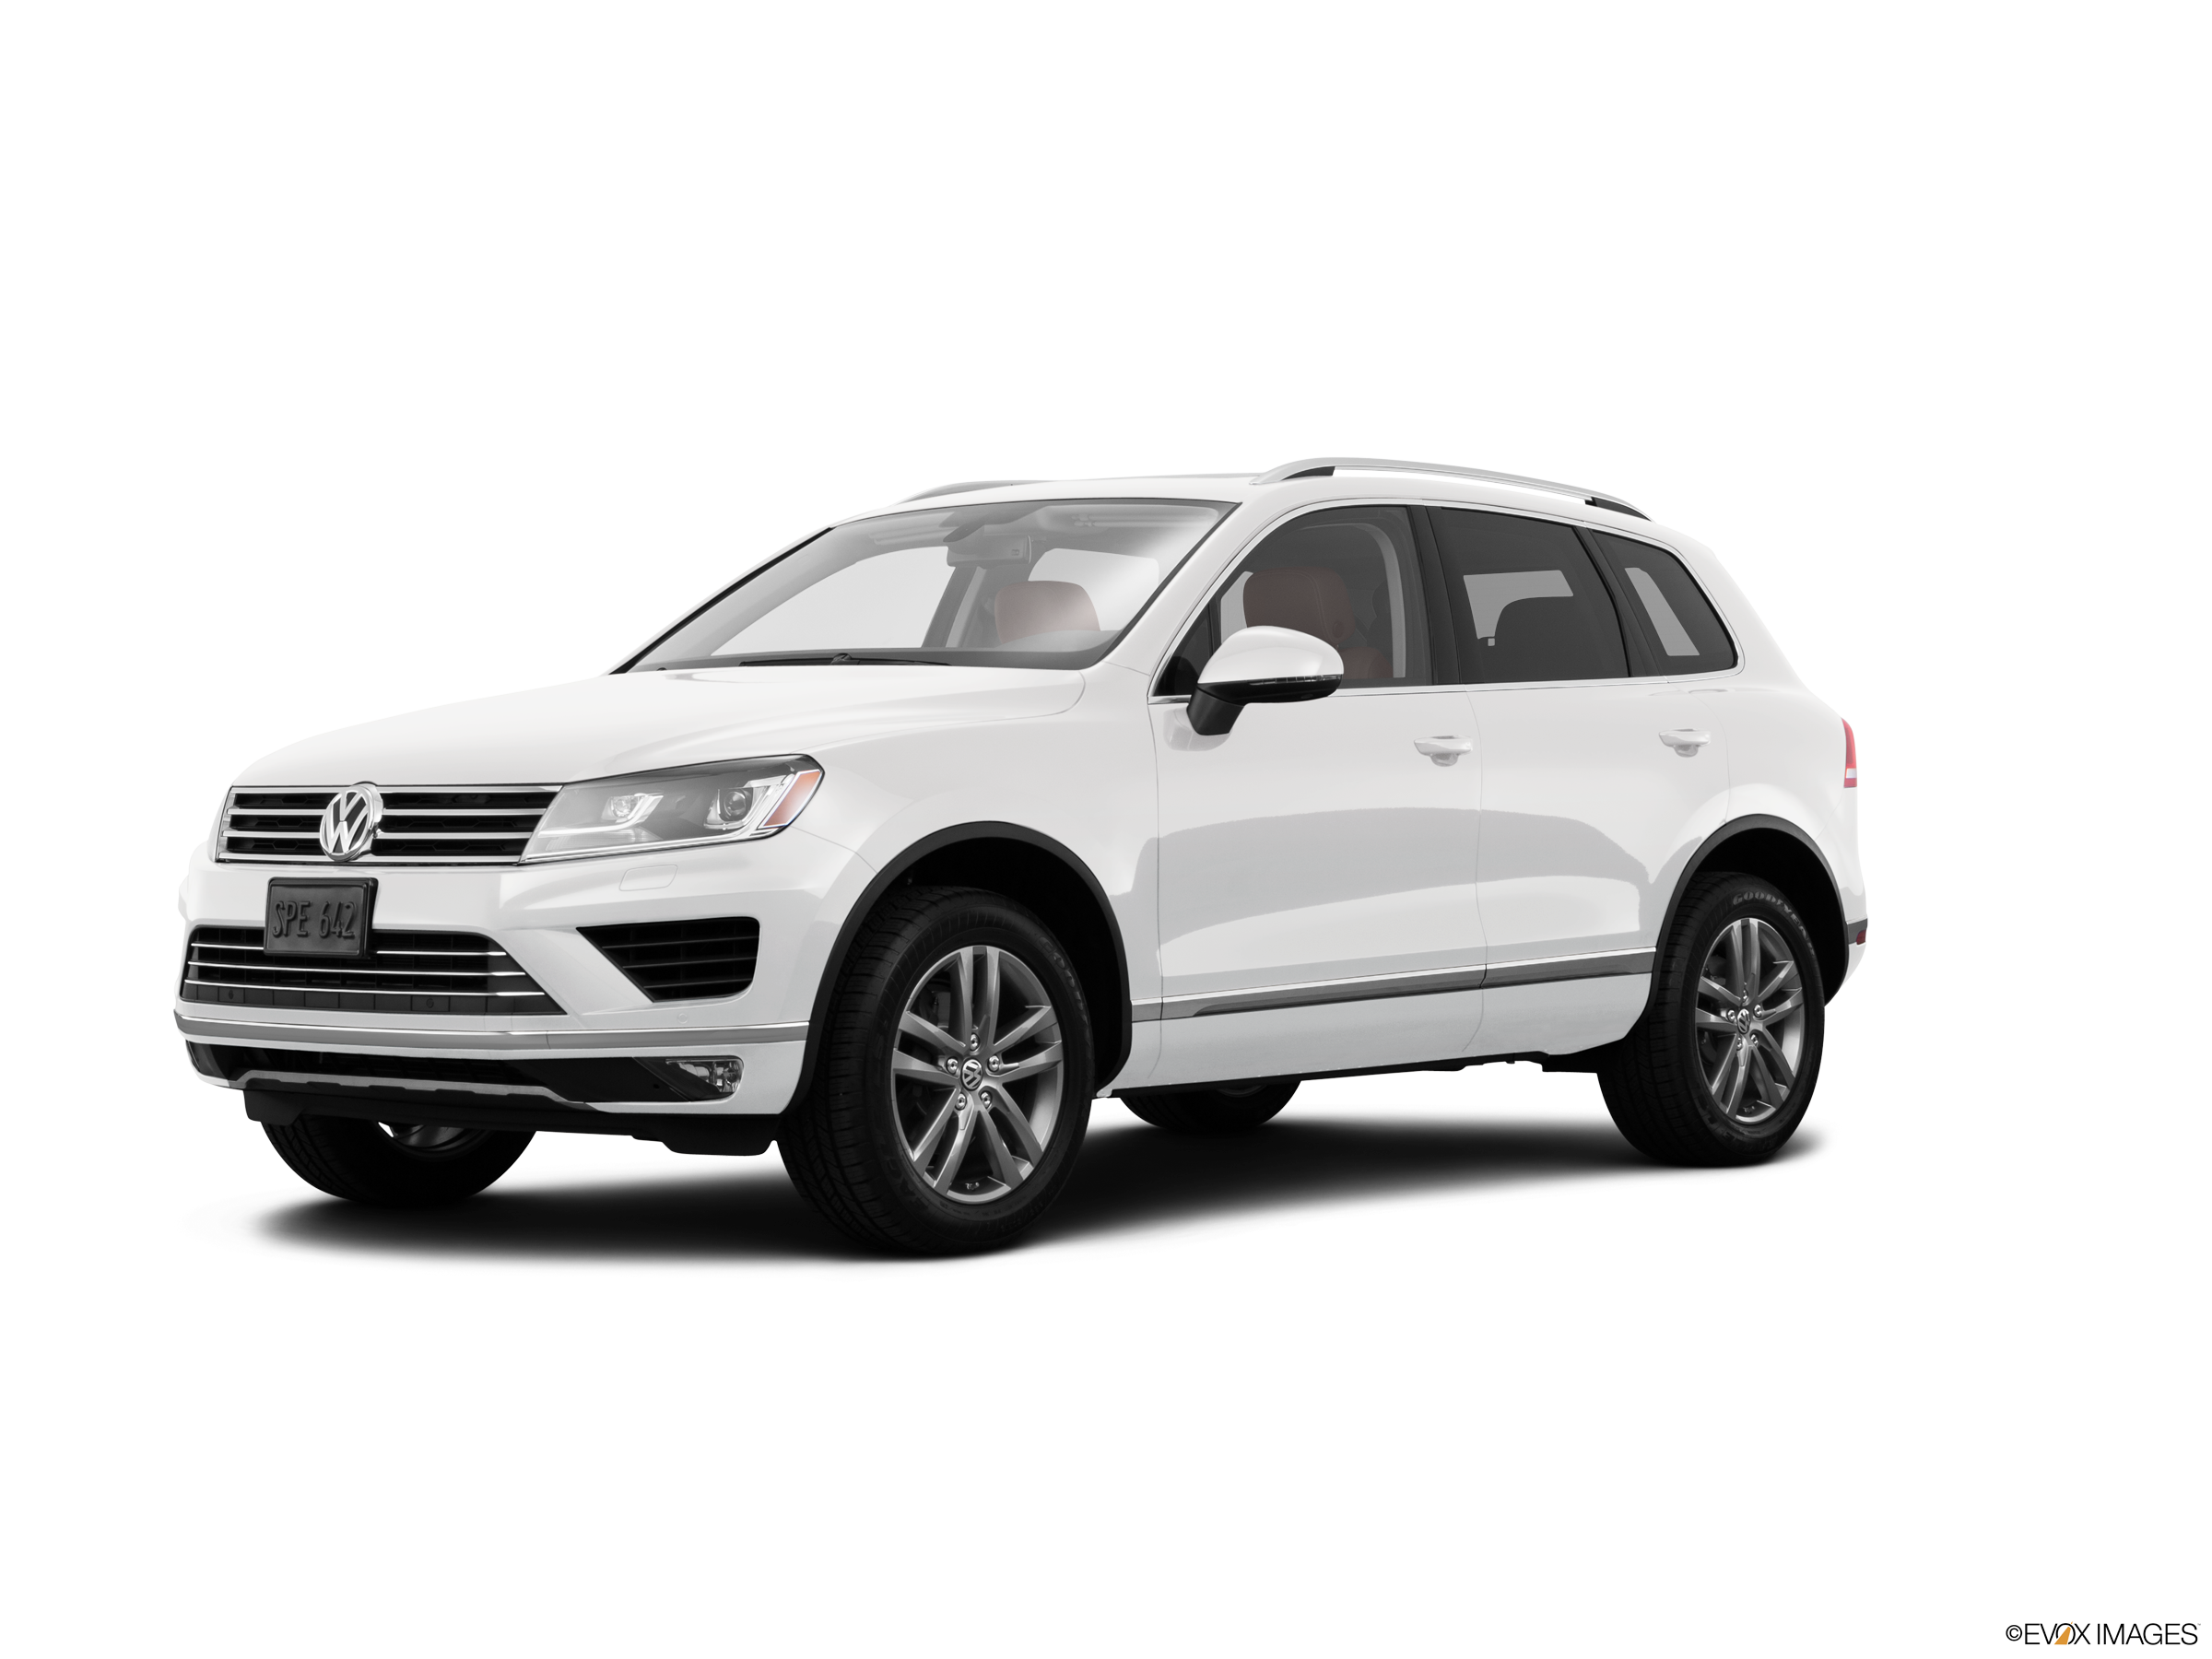 2015 Volkswagen Touareg Values Cars For Sale Kelley Blue Book